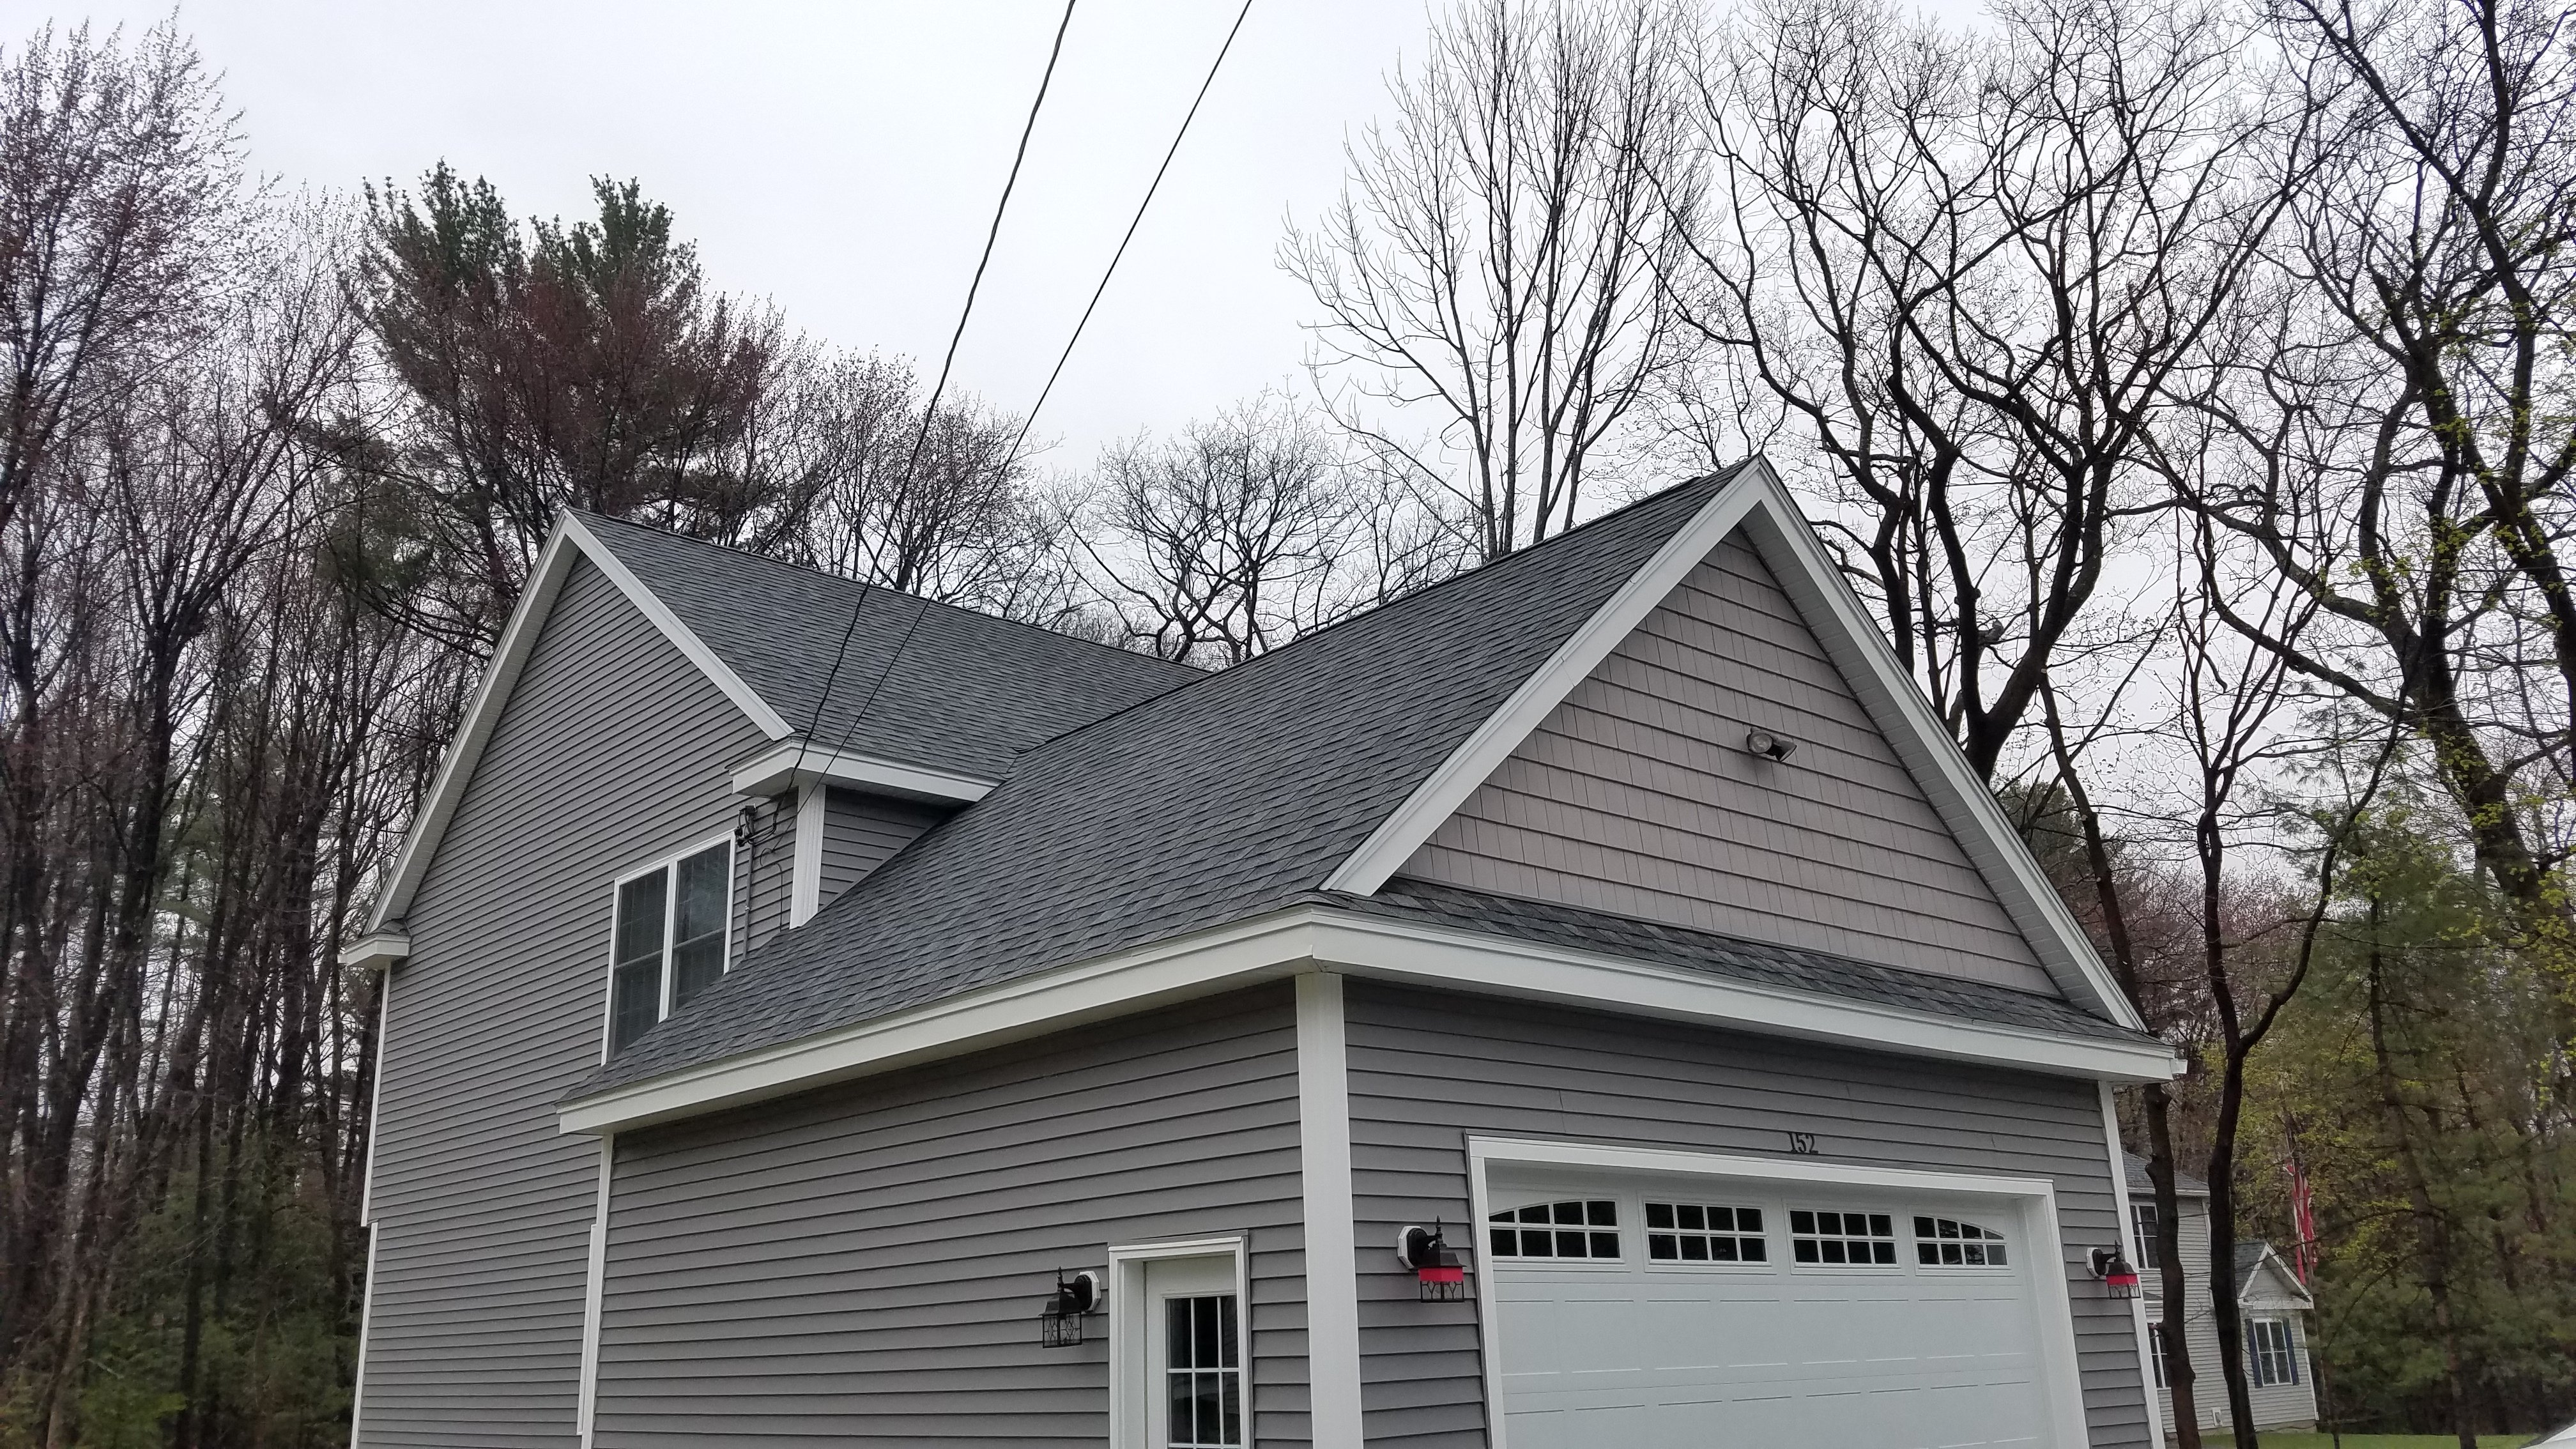 Residential Roof by ASAP Roofing NH | 152 Arah St, Manchester NH